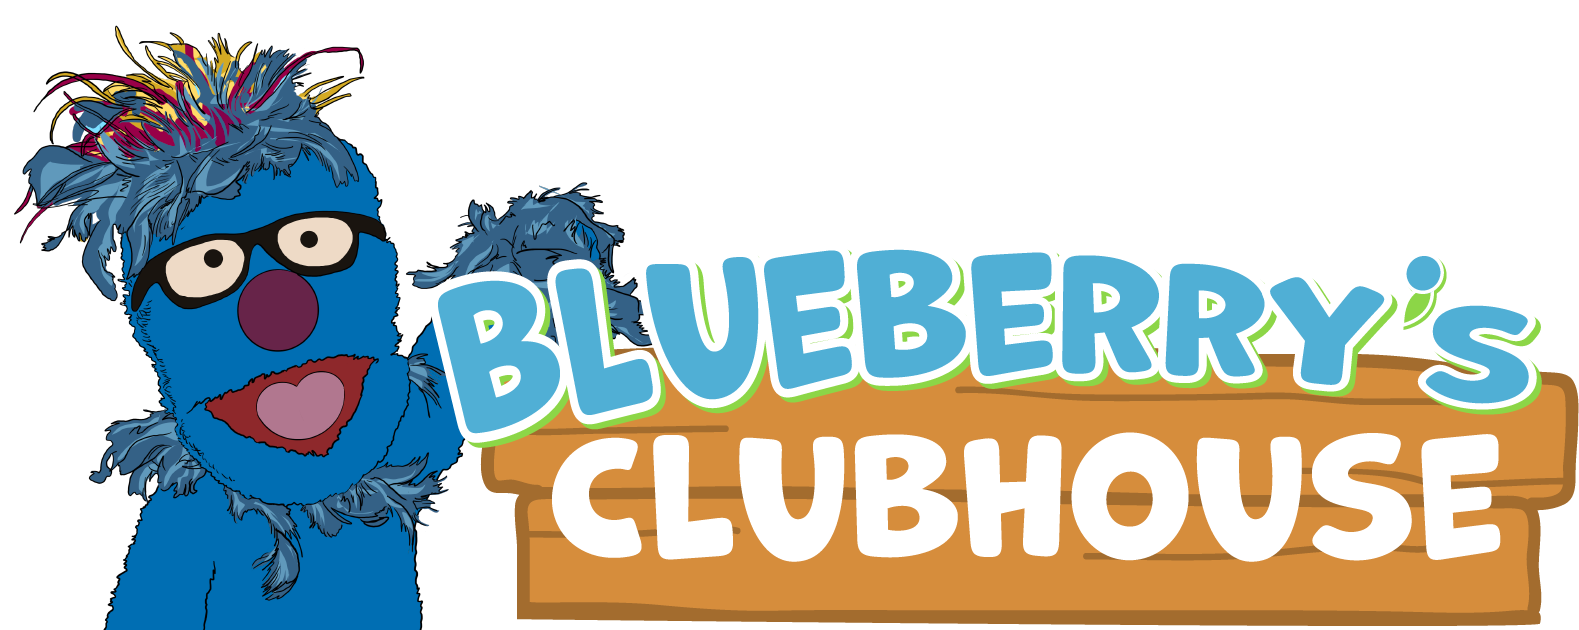 Blueberry's Clubhouse logo